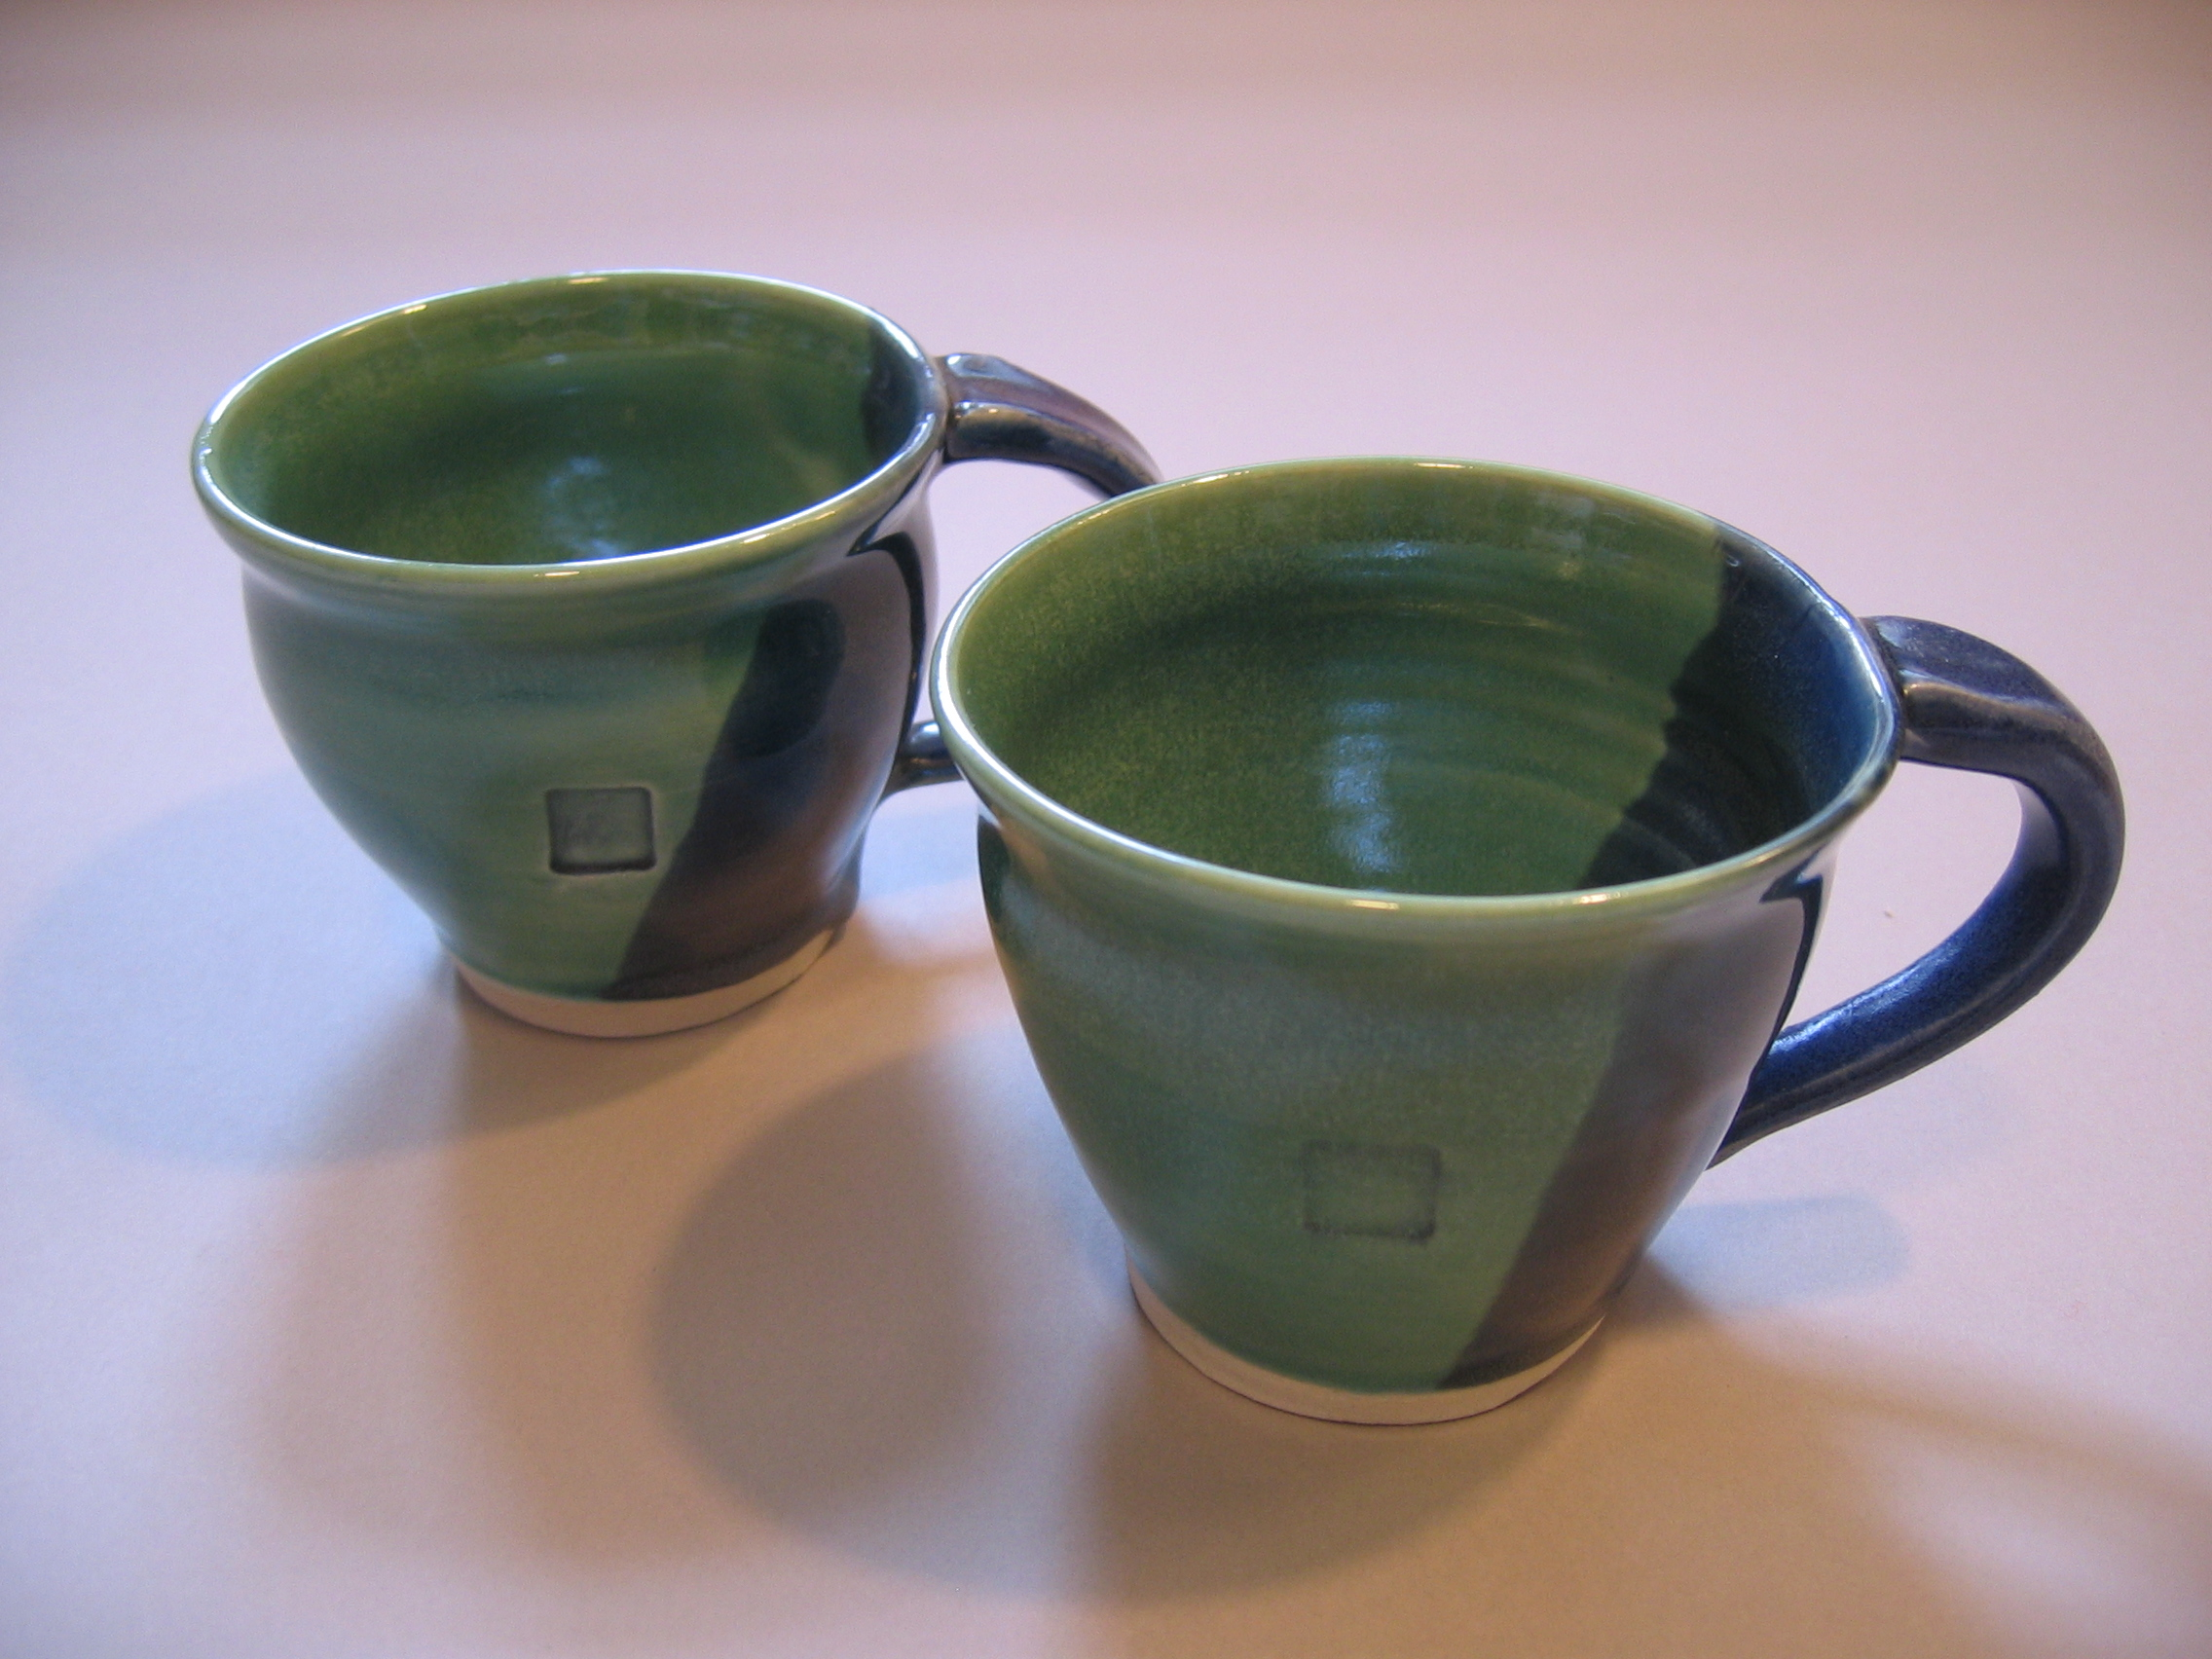 2 Blue green mugs $16 each